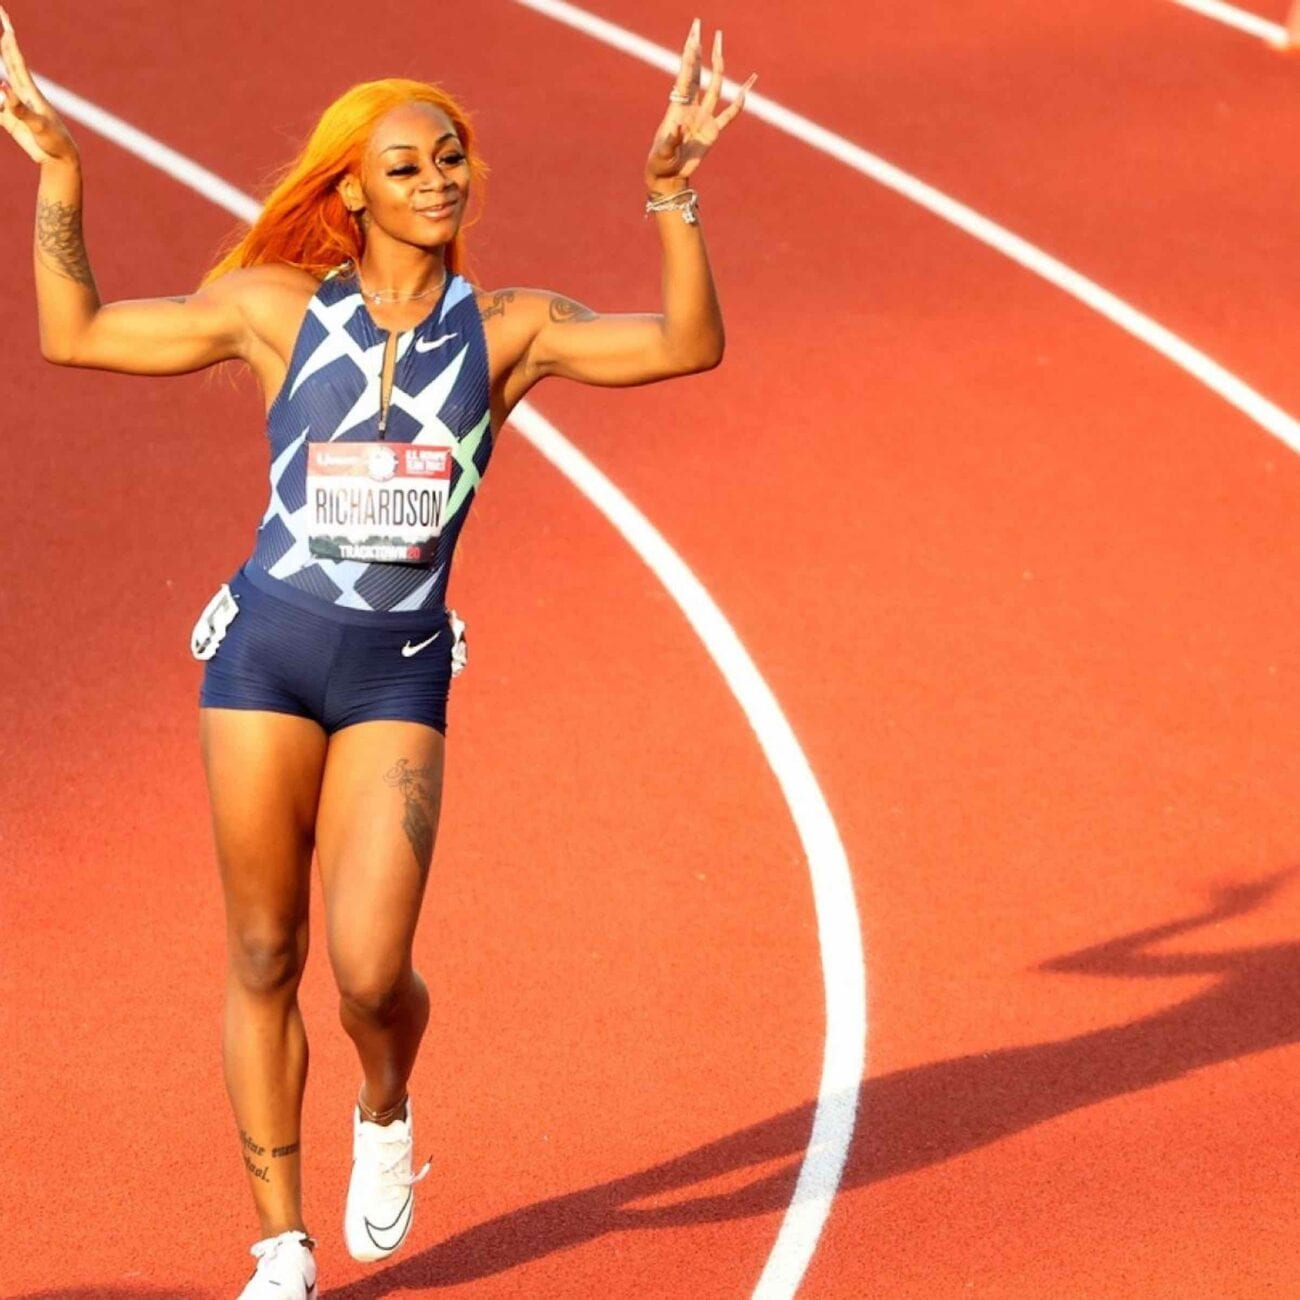 It looks like the finish line got a lot further for this 2021 Olympic runner. Get you running shoes and dive into why Sha'Carri Richardson was disqualified.